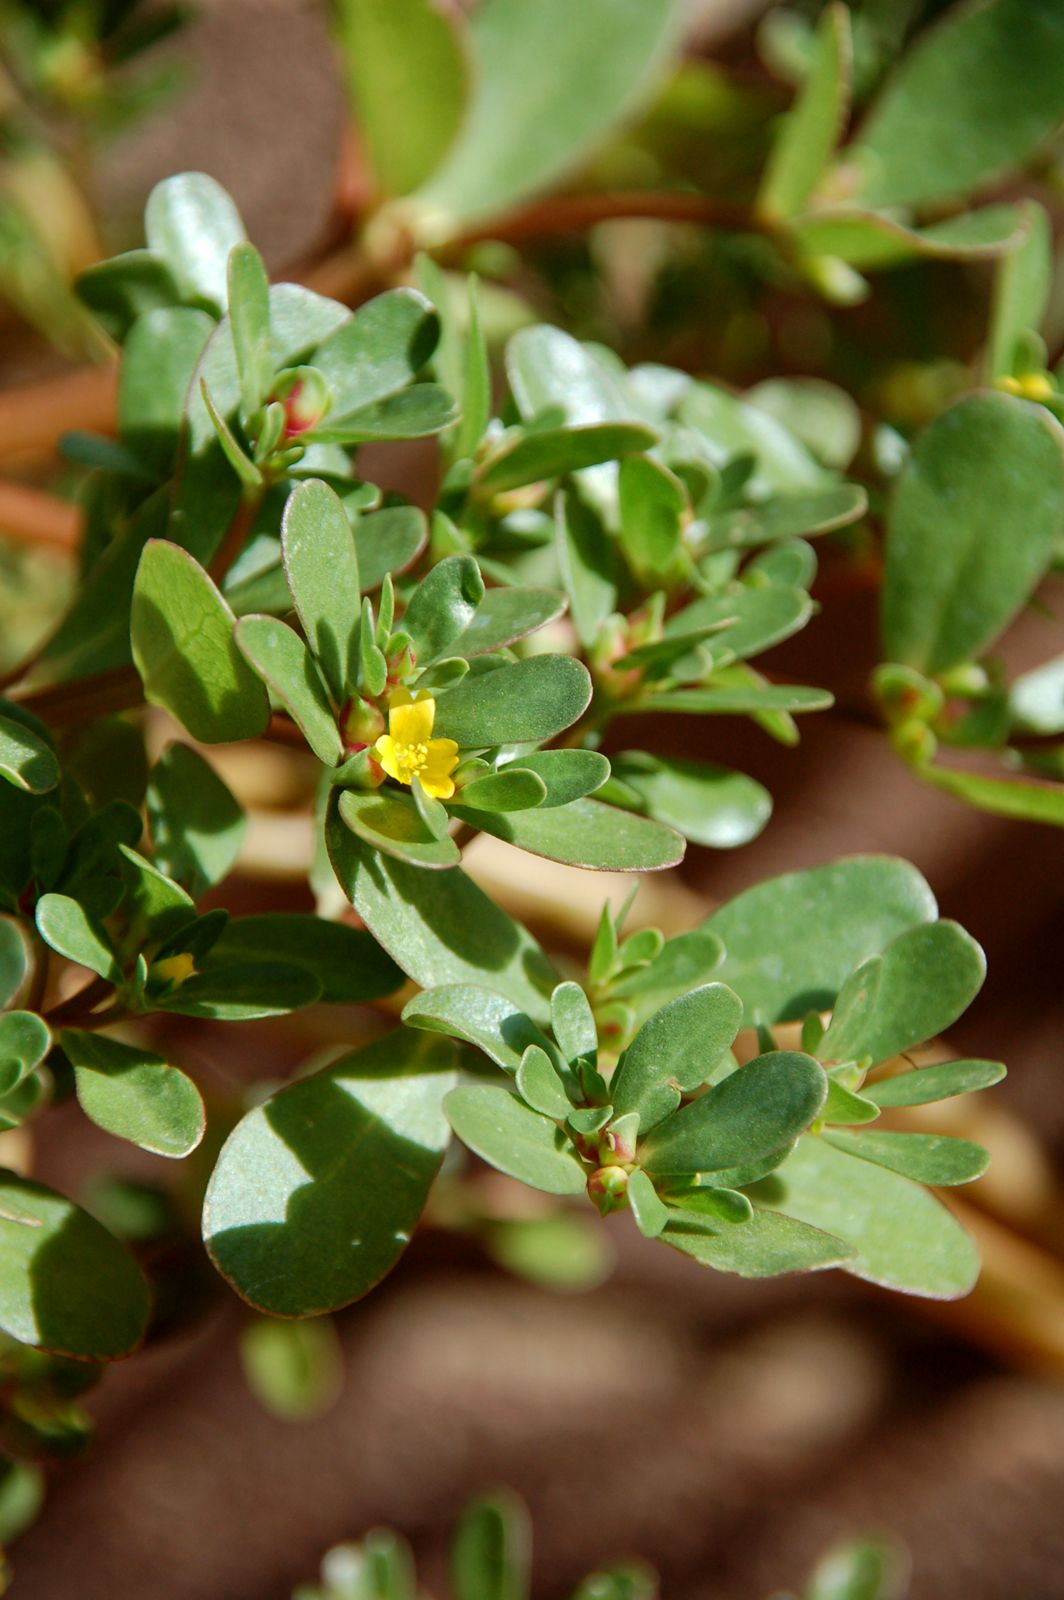 Purslane - Yummy and loaded with Omega 3. I prefer it raw or I make salsa with it.